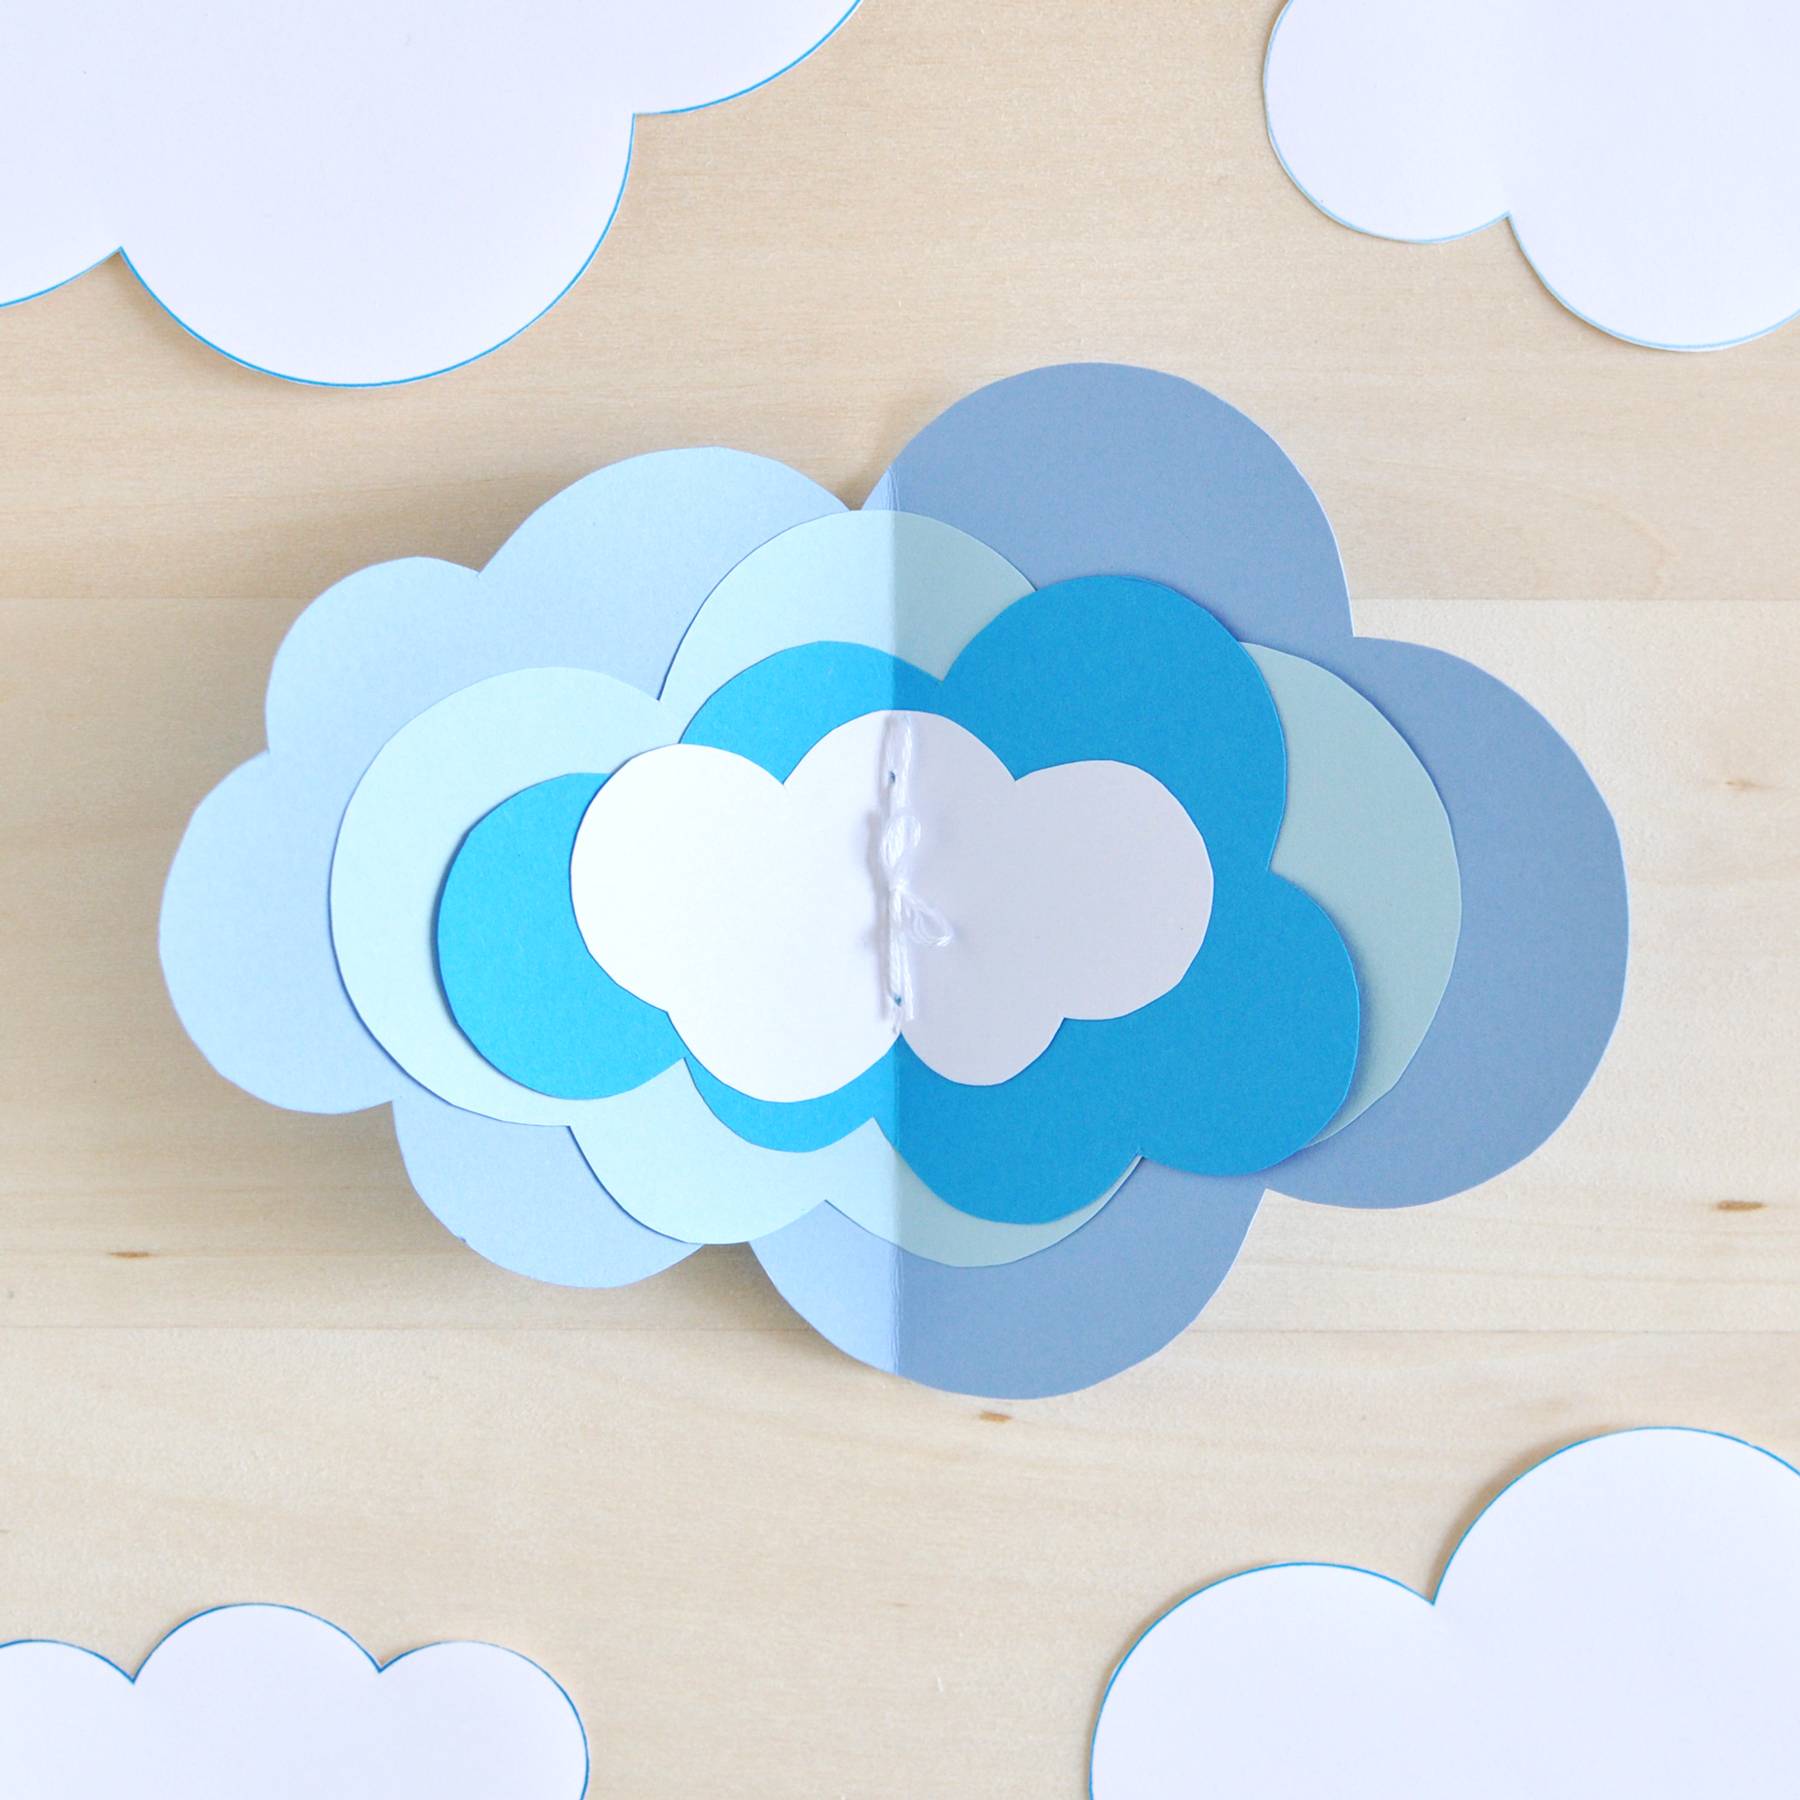 Make-Your-Own-Mini-Cloud-Journal---Image11.jpg